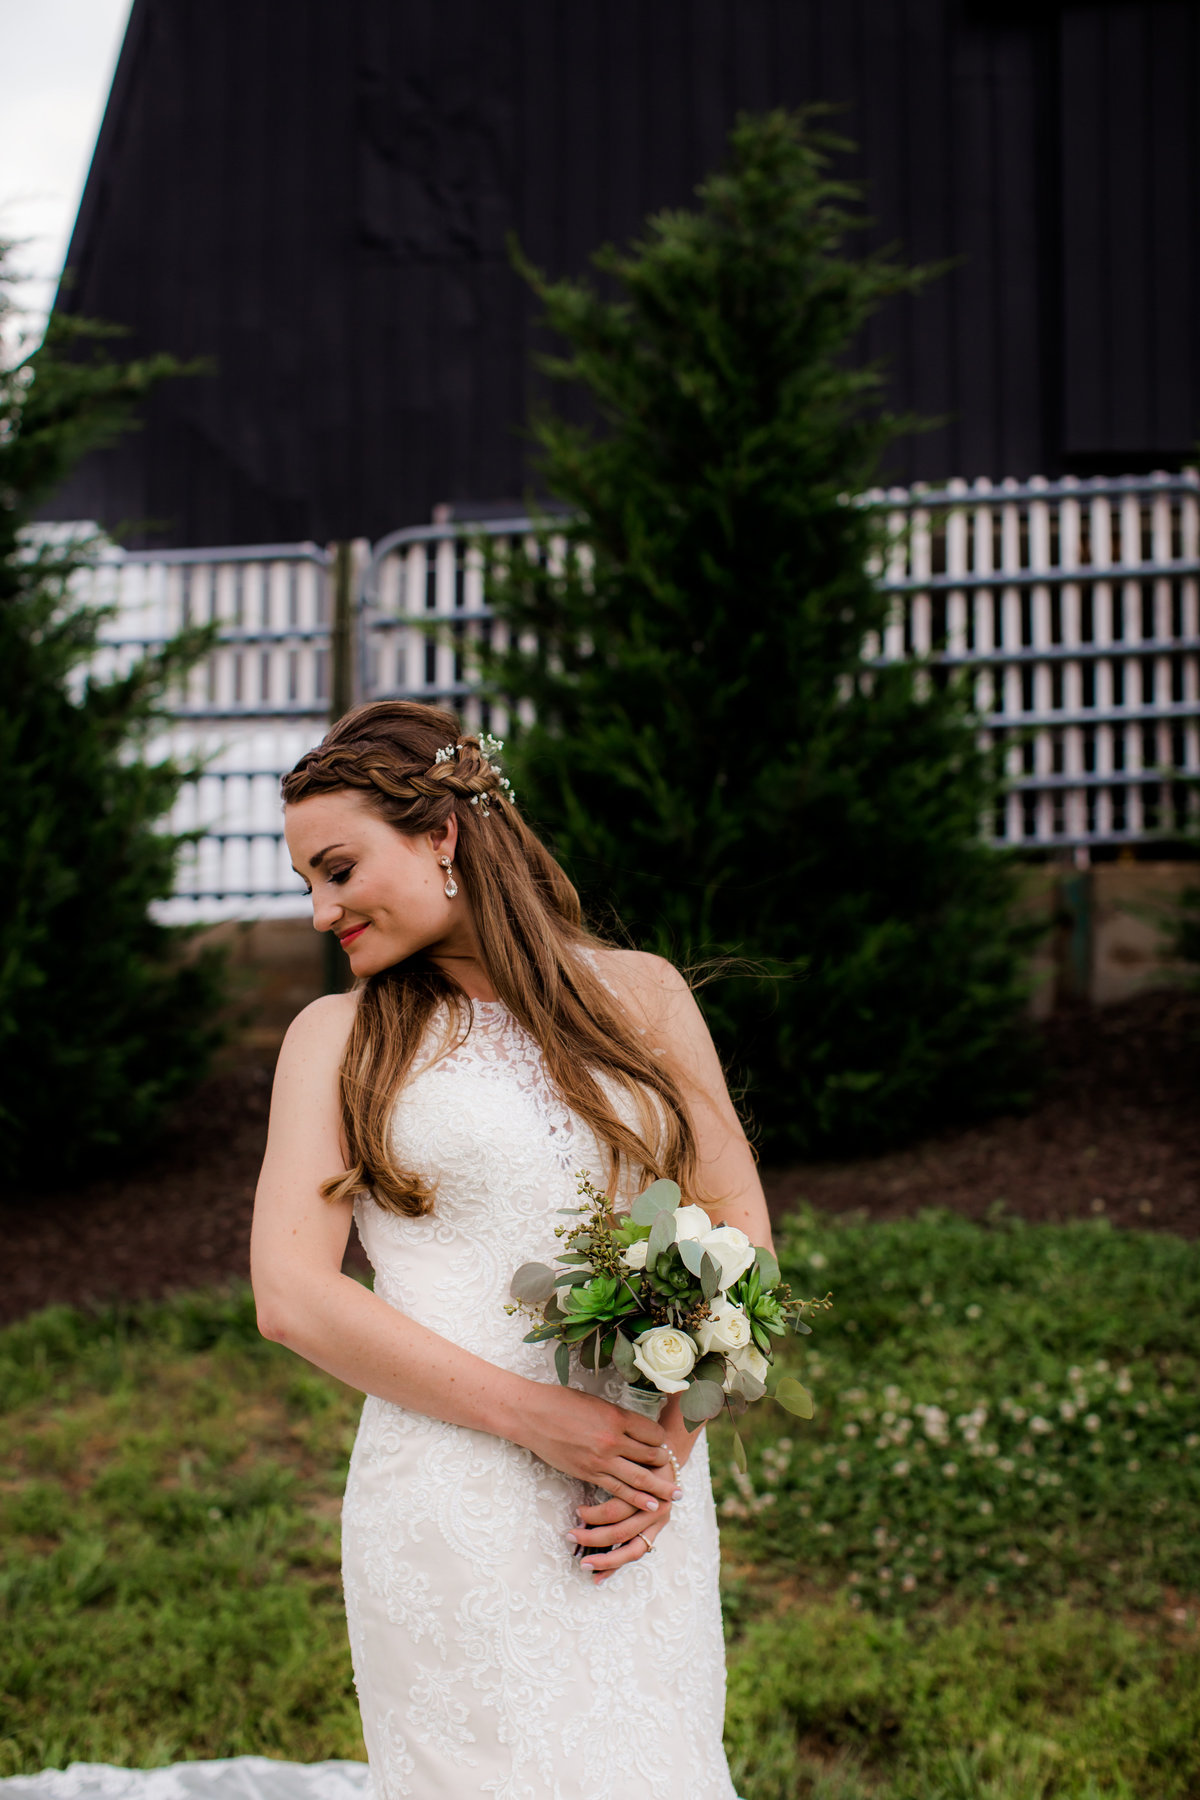 Nsshville Bride - Nashville Brides - The Hayloft Weddings - Tennessee Brides - Kentucky Brides - Southern Brides - Cowboys Wife - Cowboys Bride - Ranch Weddings - Cowboys and Belles052